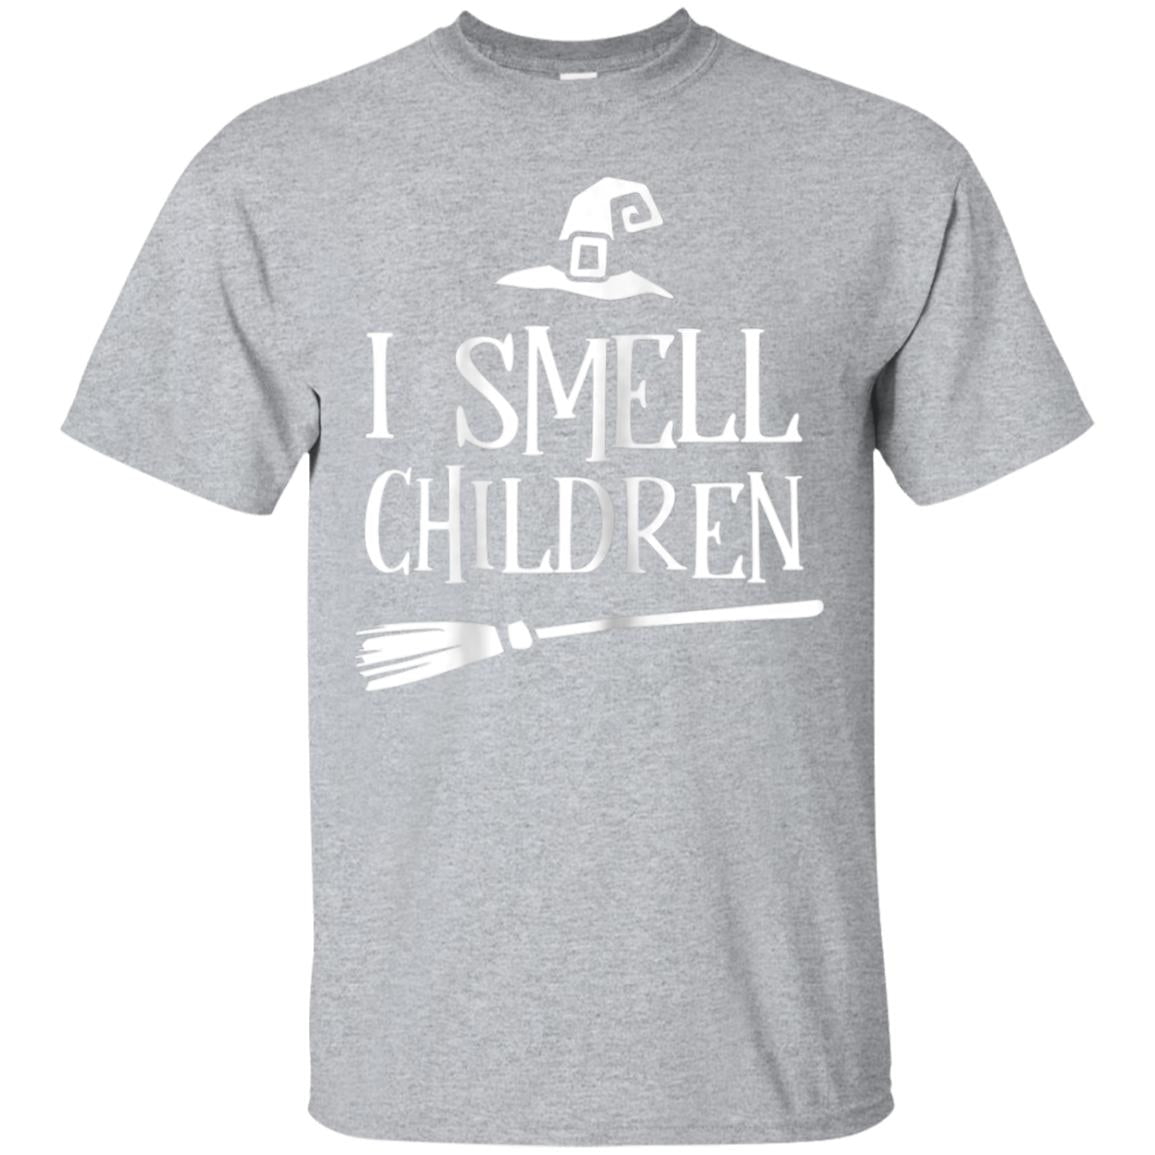 I Smell Children T Shirt Halloween Funny Costume Witches 99promocode